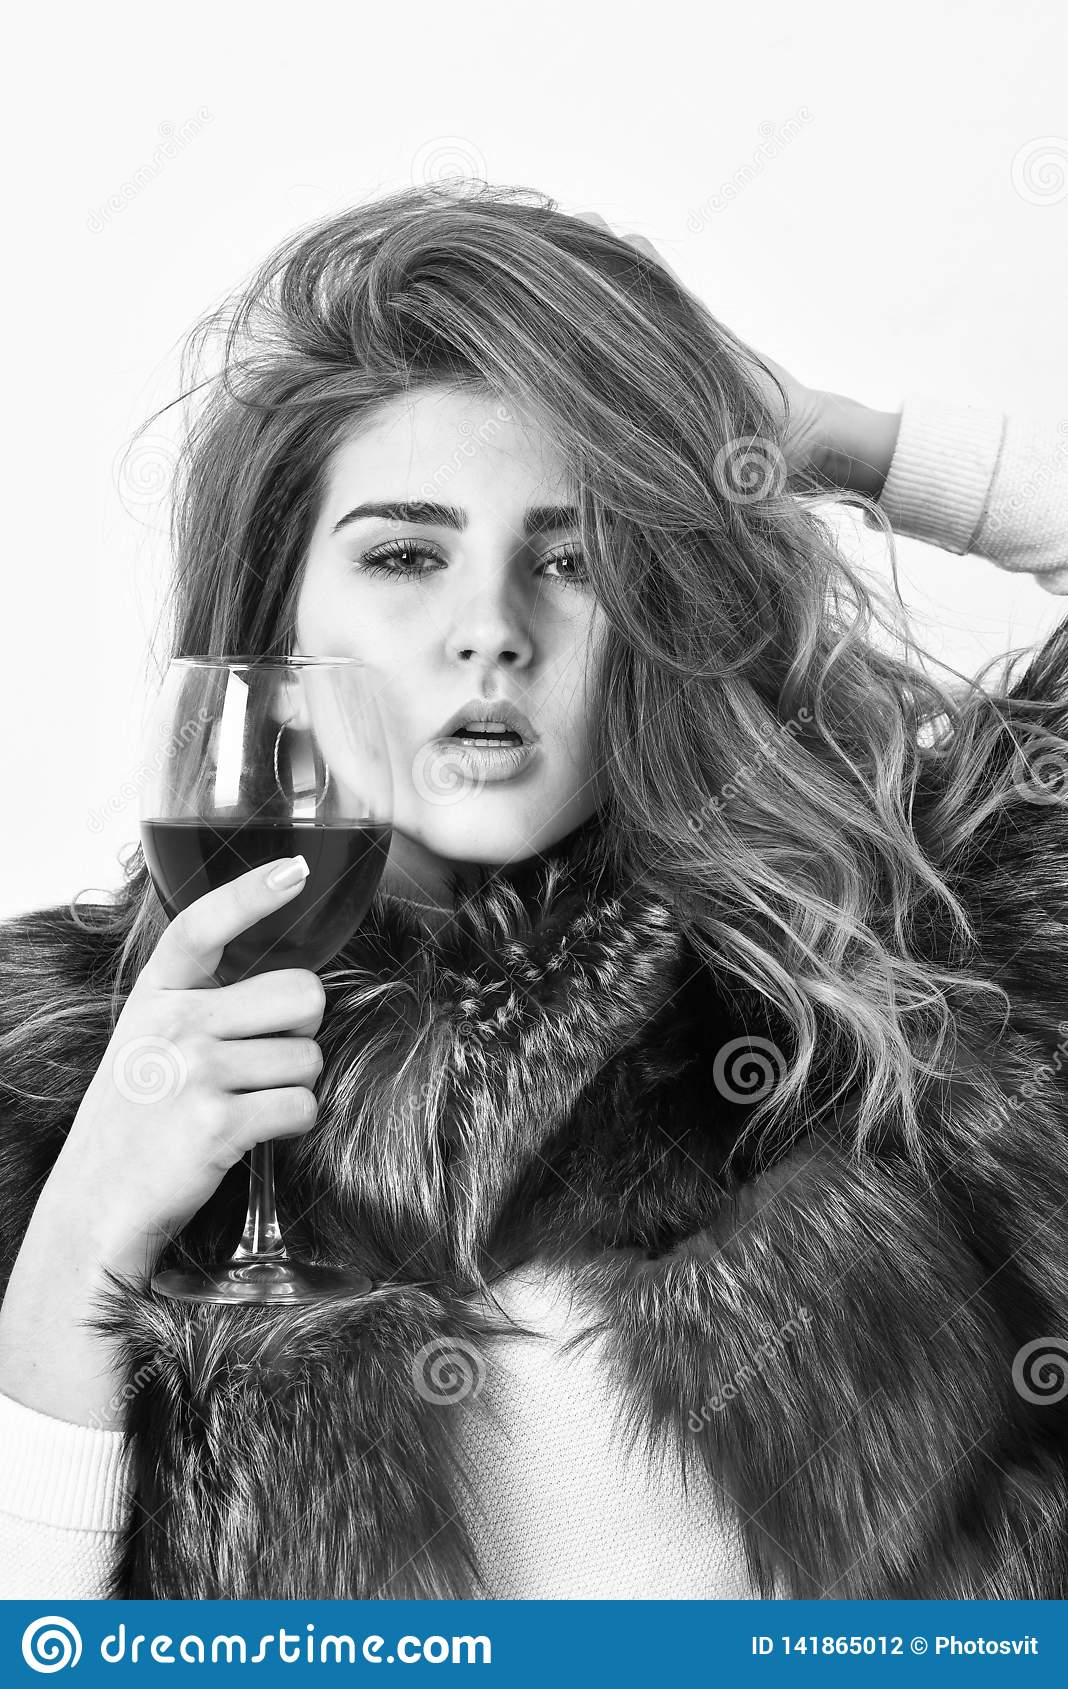 Elite leisure. Lady fashion model curly hairstyle enjoy elite wine. Wine culture concept. Woman drink wine. Reasons